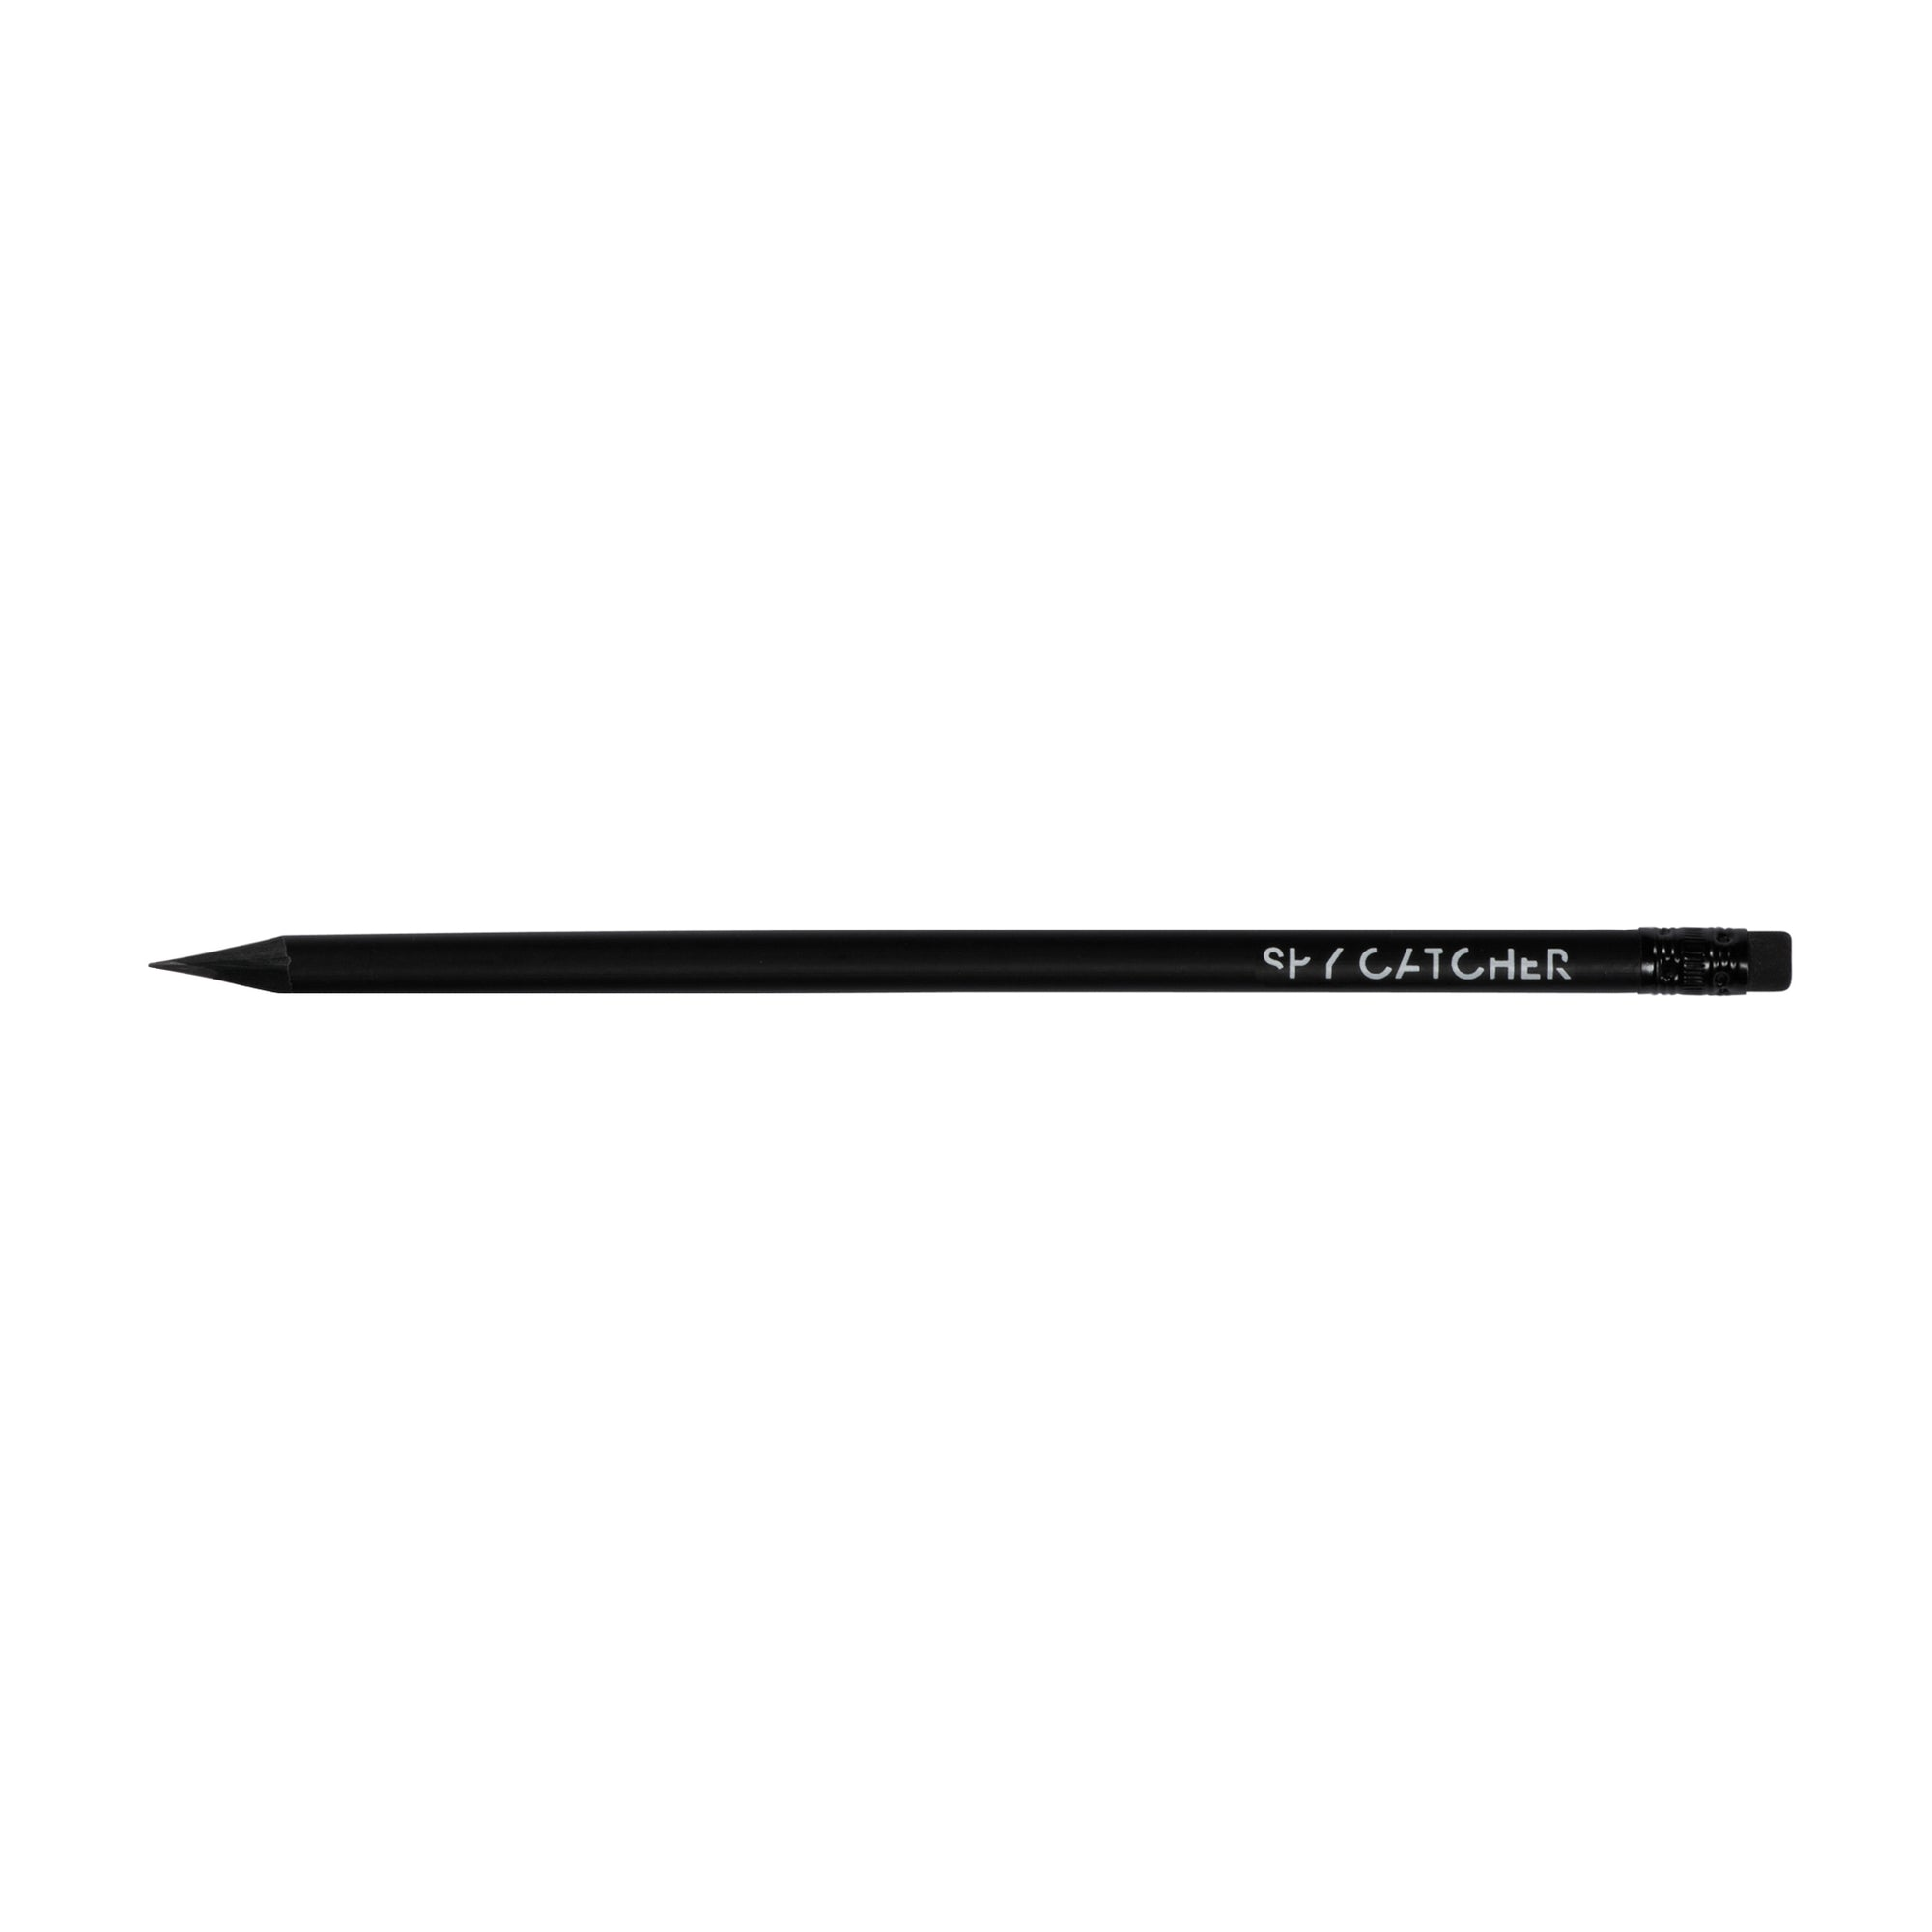 SPYSCAPE Spycatcher Pencil -